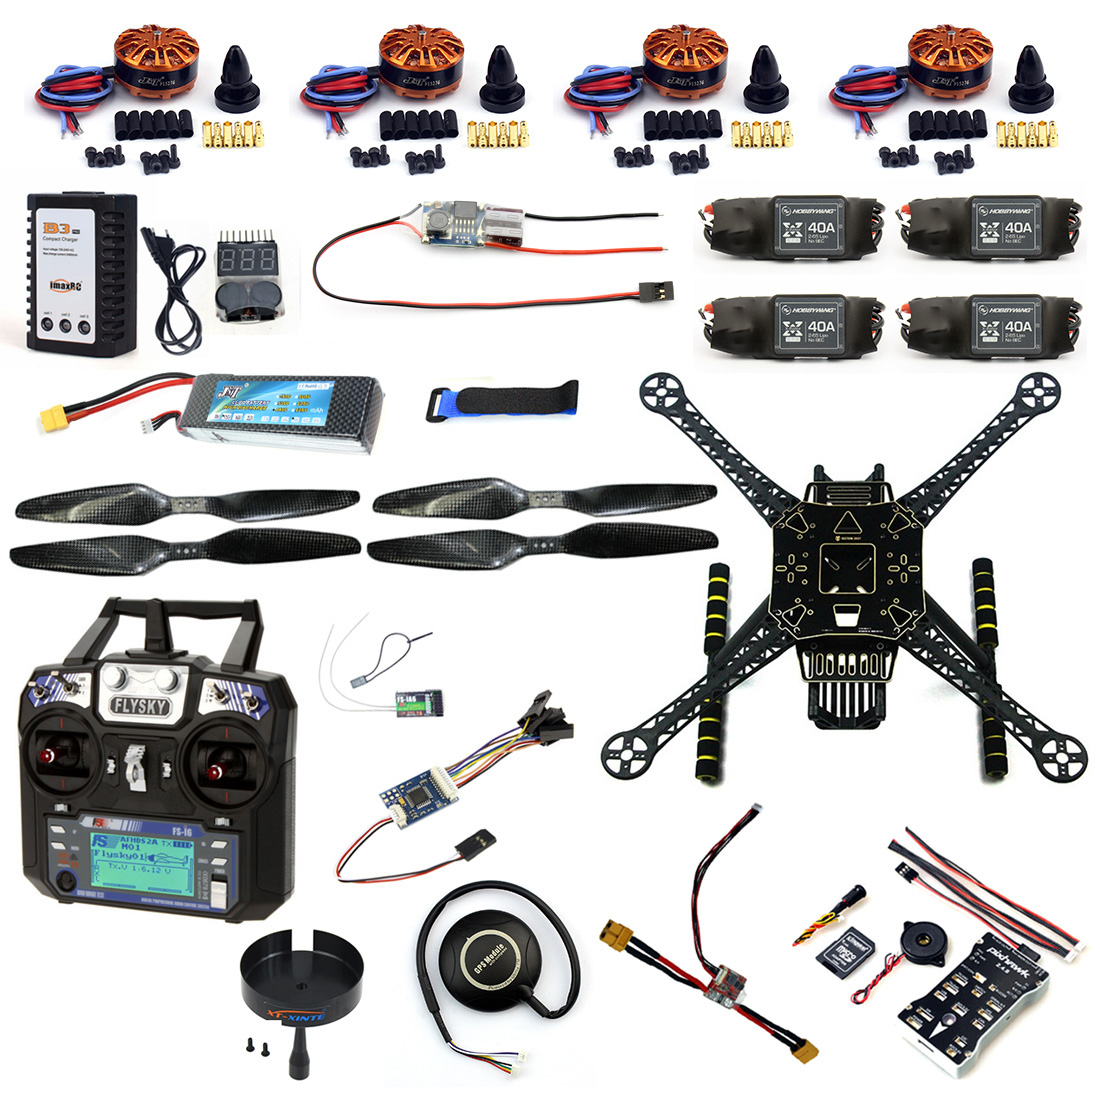 DIY RC Drone Full Kit 4-Axle S600 Frame PIX 2.4.8 Flight Control flysky FS-i6 Transmitter Motor 40A ESC GPS with Battery Charger zd850 full carbon fiber 850mm hexa rotor frame pix pixhawk 2 4 8 flight comtrol 5010 360kv motor 40a brushless opto esc set